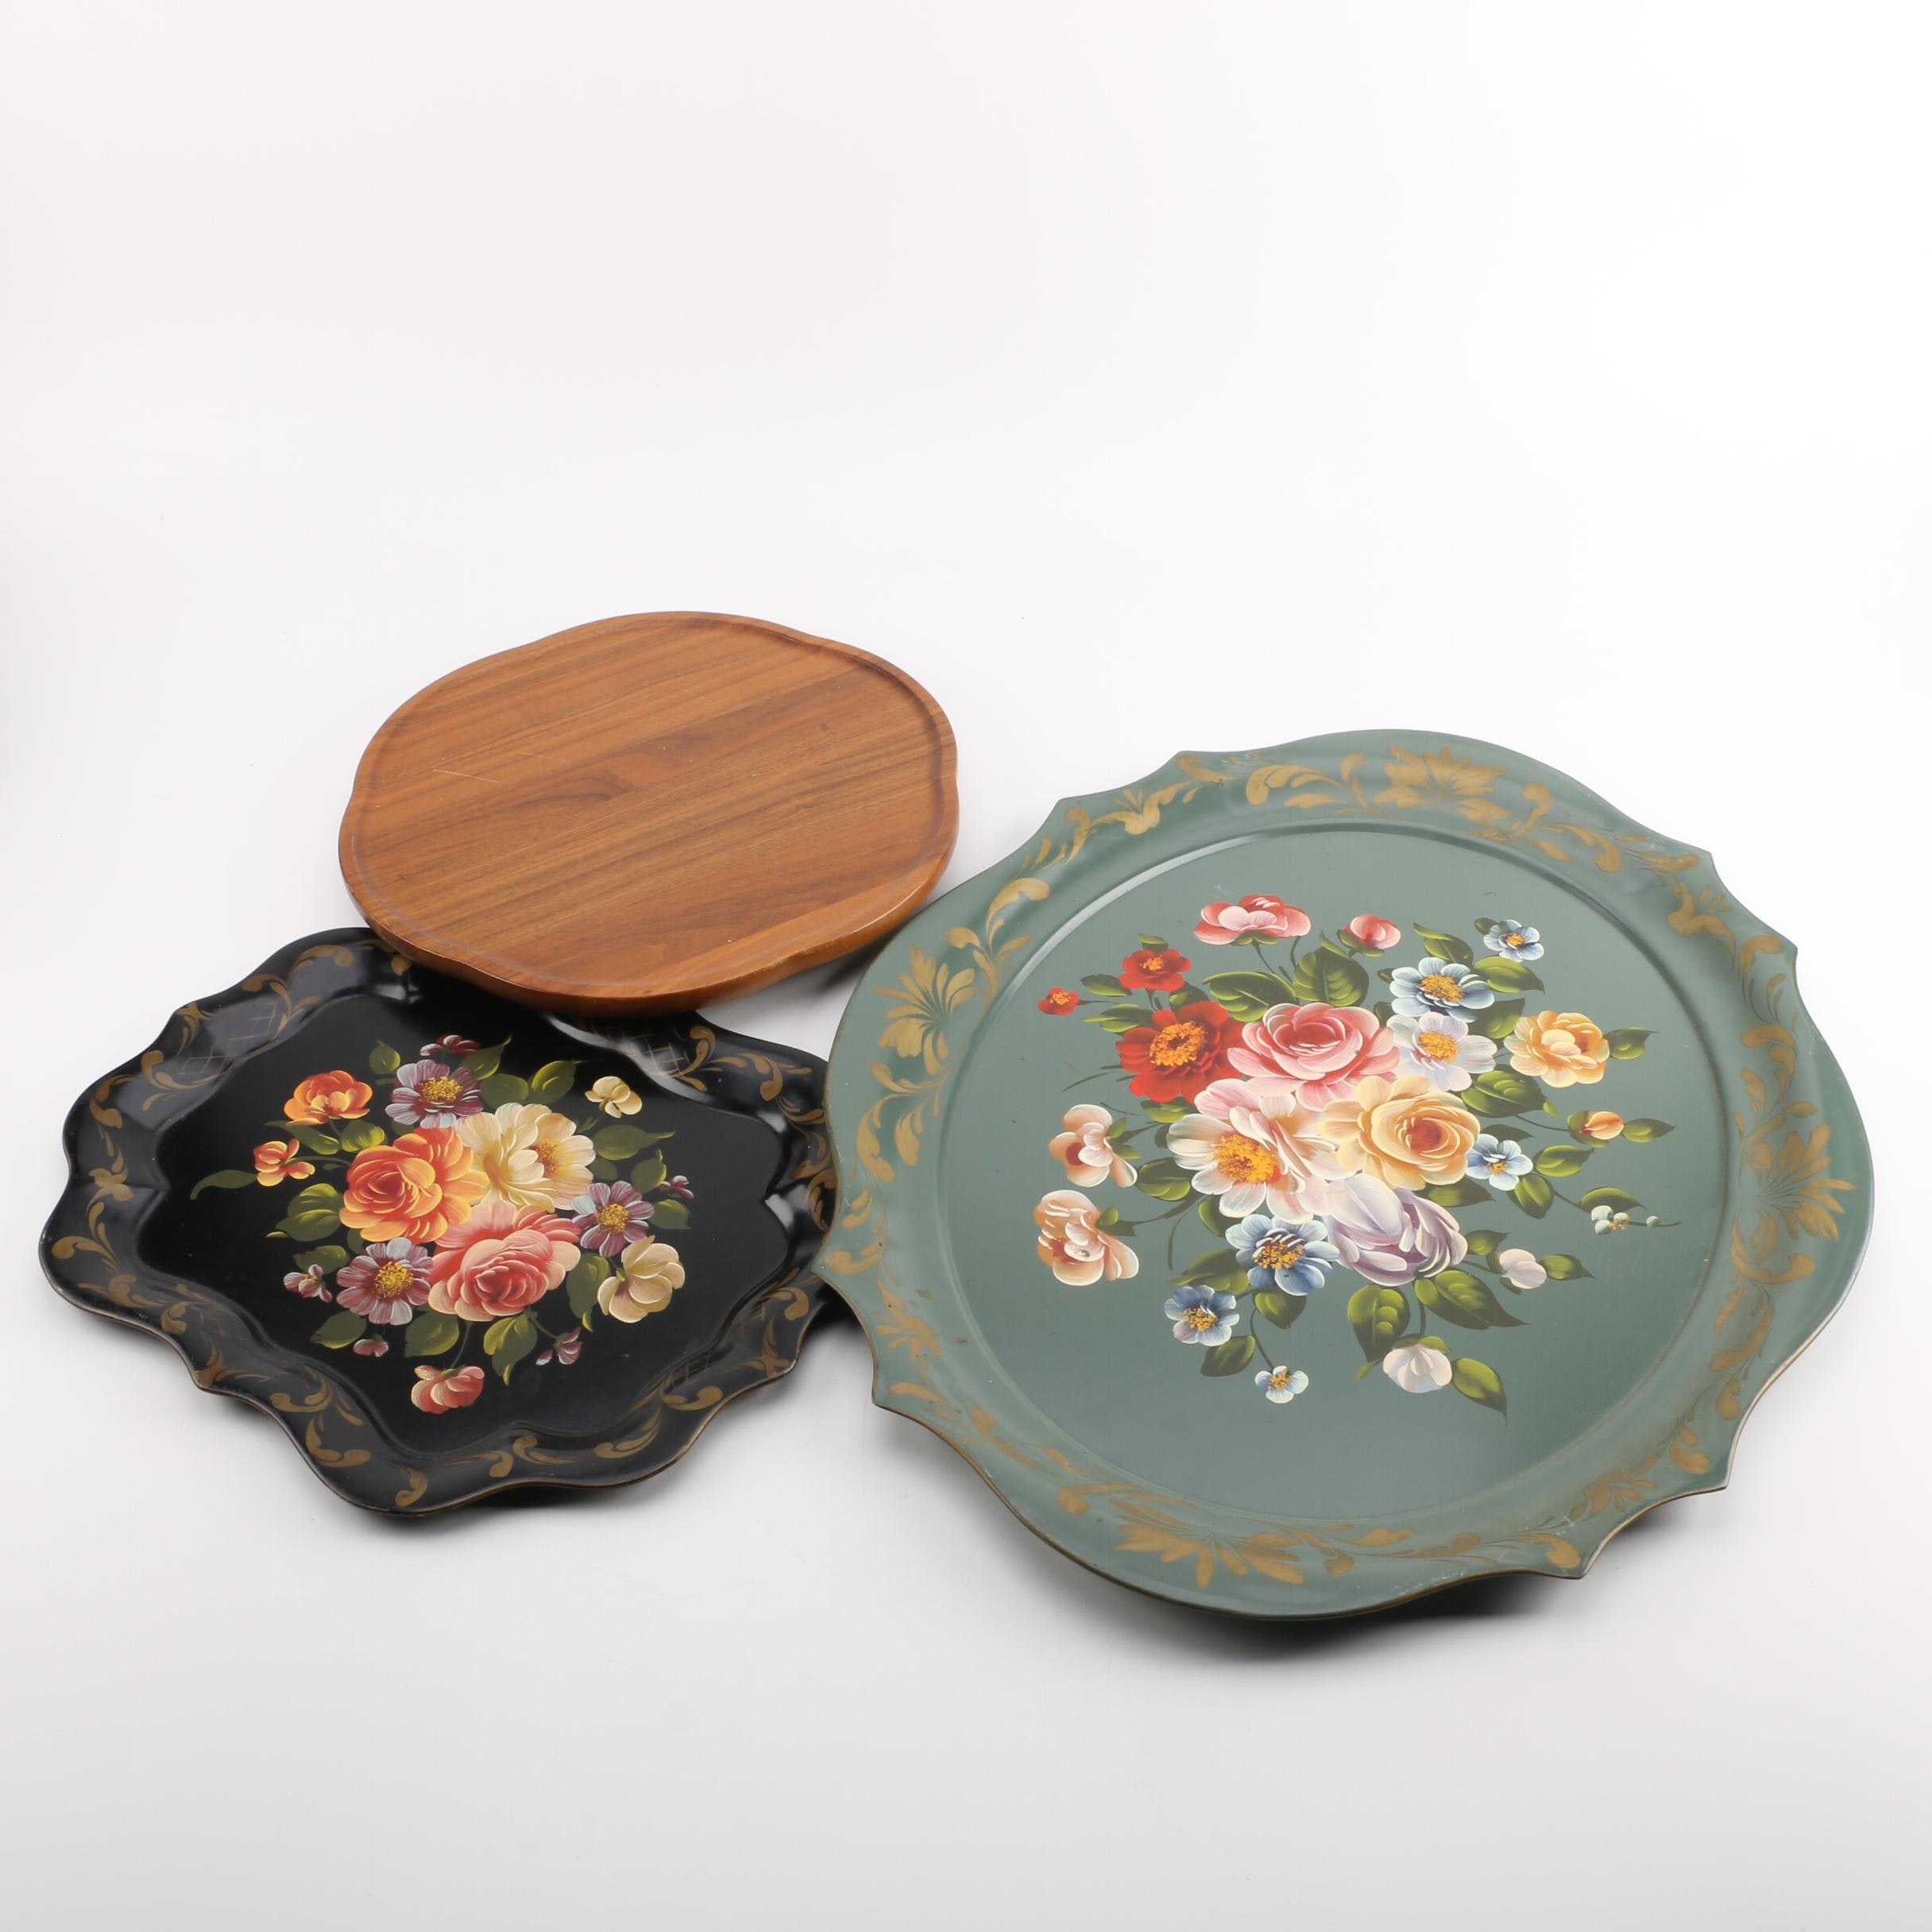 Hand-painted Tole Style Trays with Lazy Susan